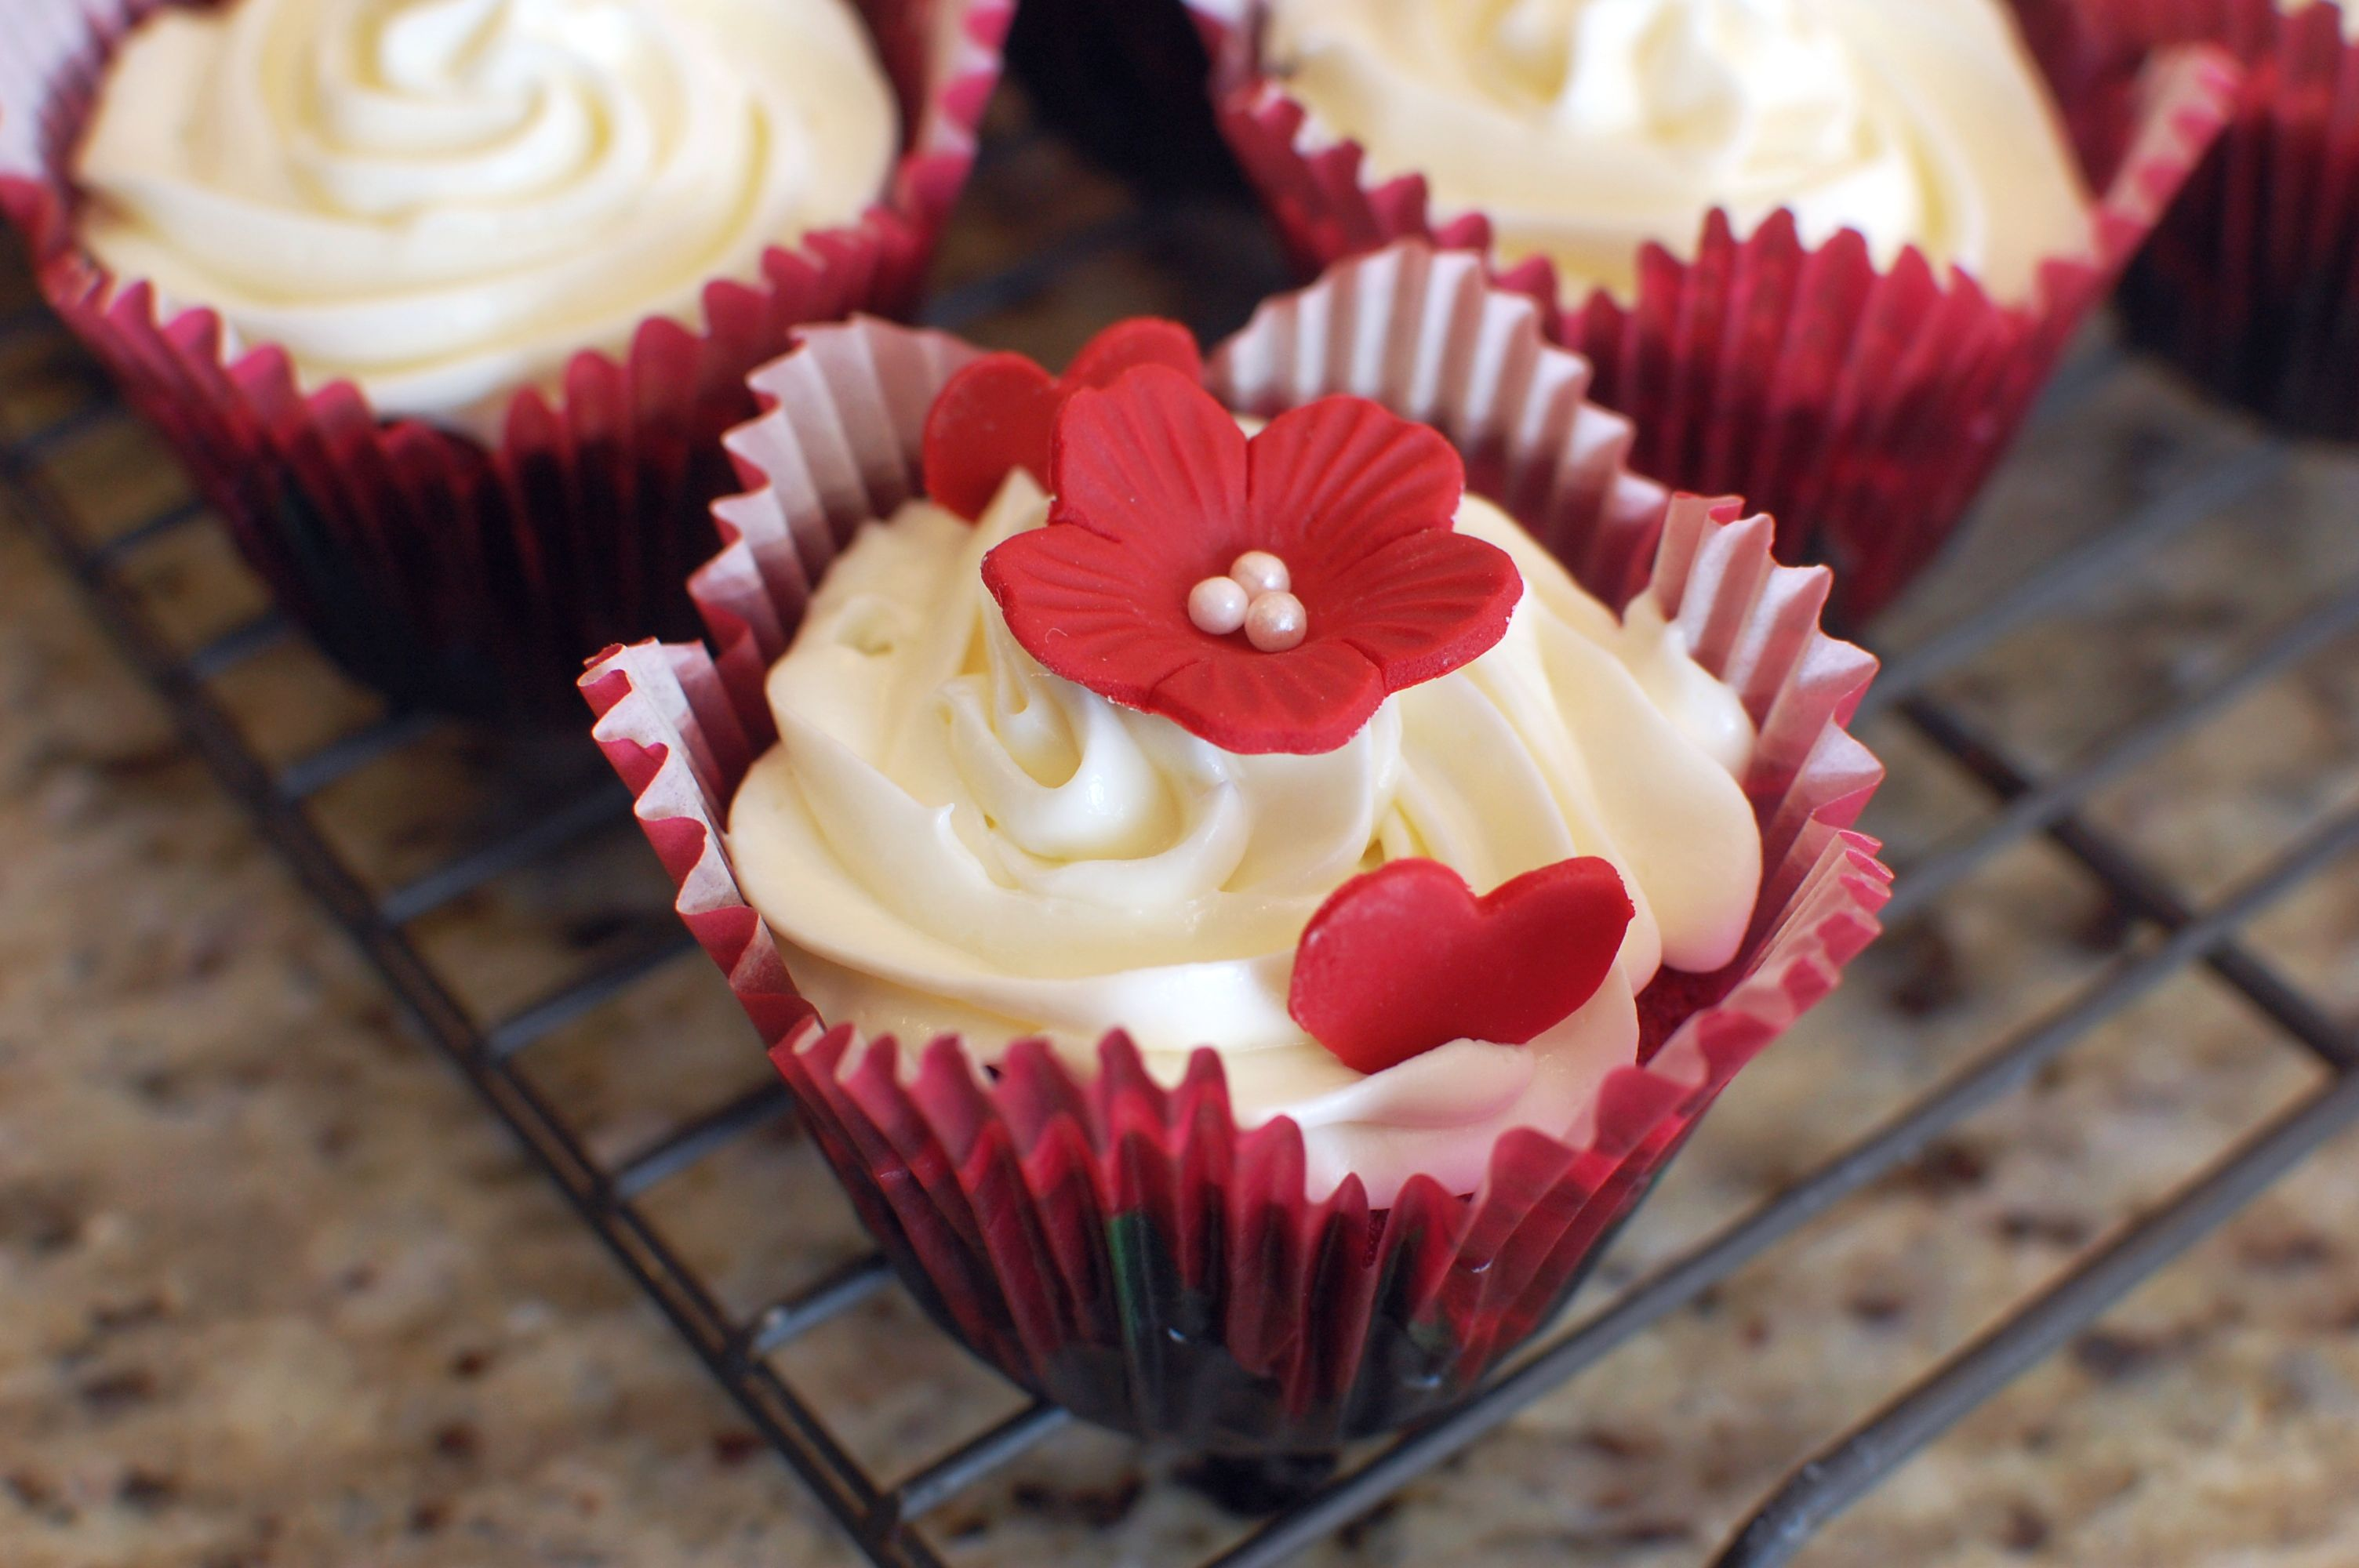 The Ultimate Moist Red Velvet Cupcakes with Cream Cheese Frosting